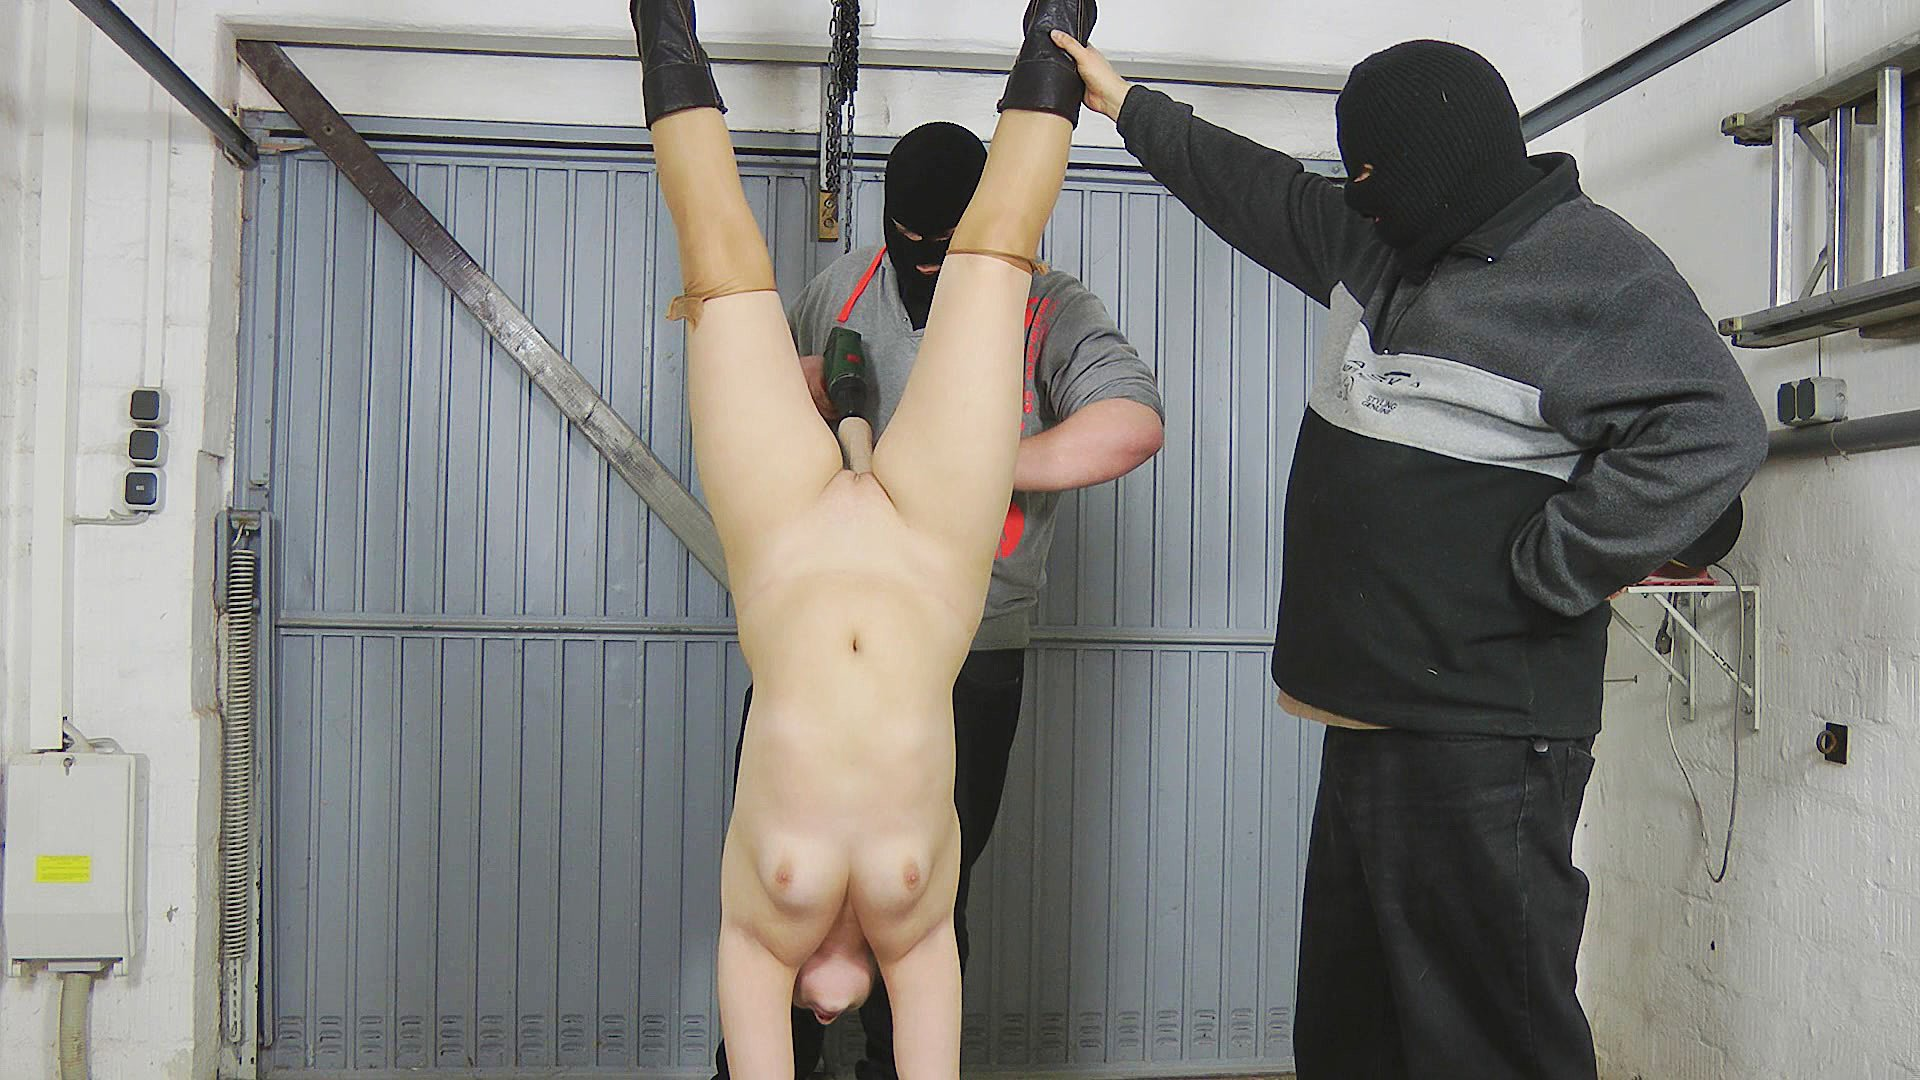 Sex hanging upside down